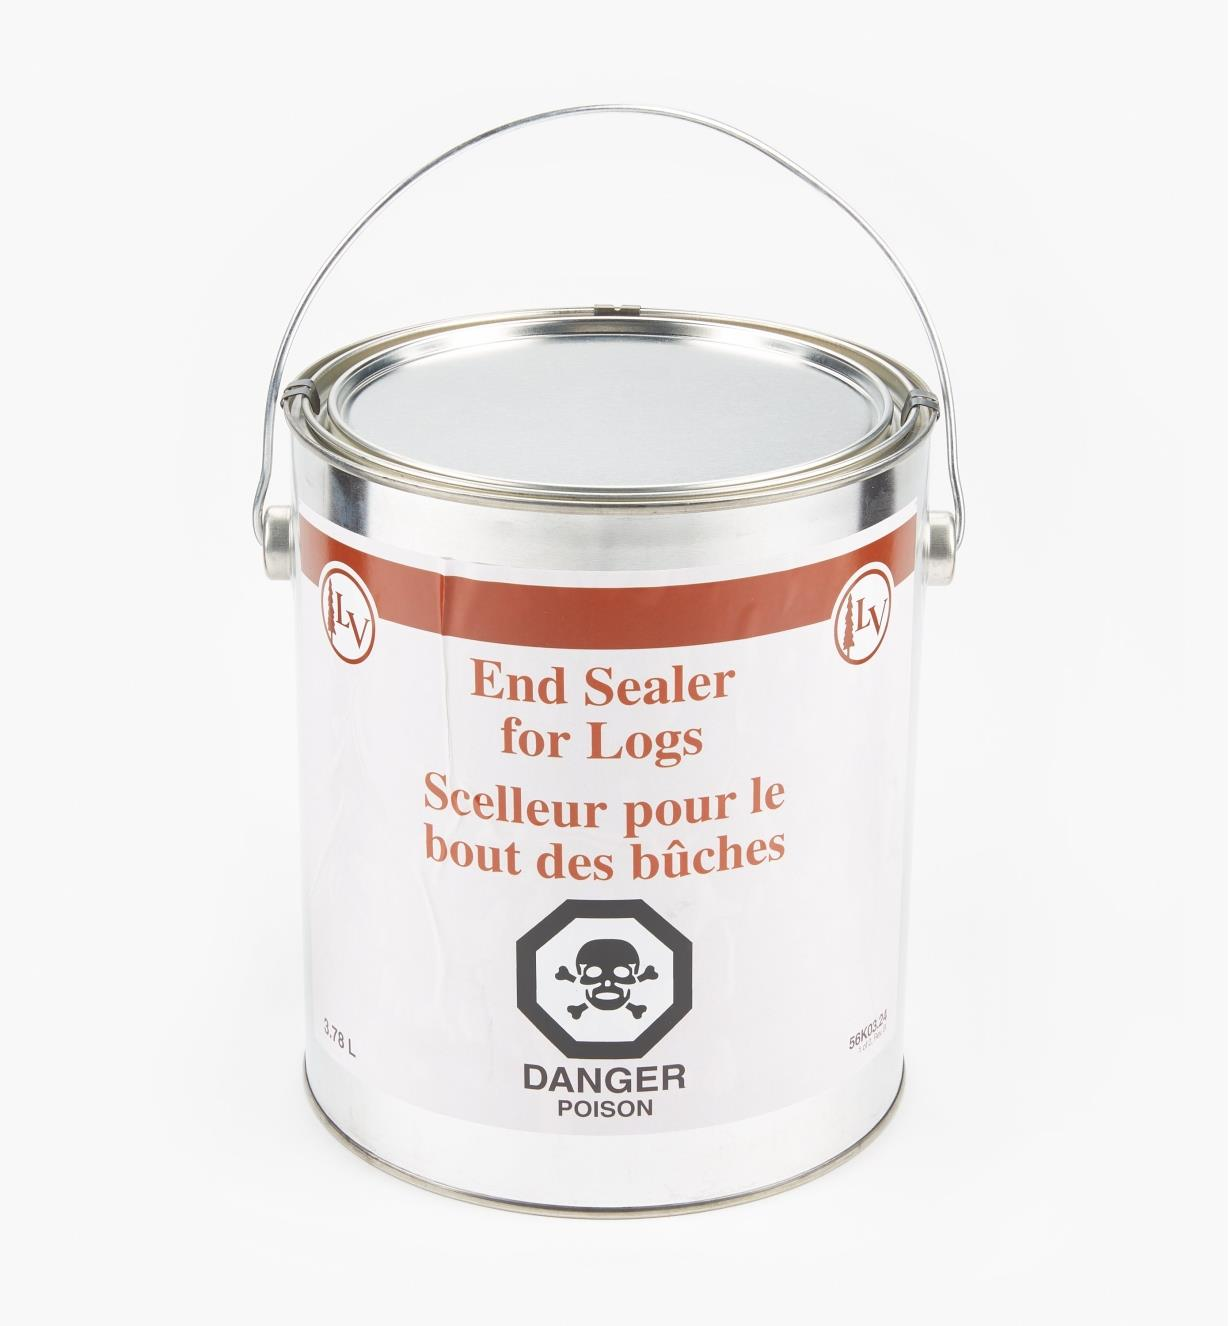 56K0324 - End Sealer, 4 qt. (3.78l)